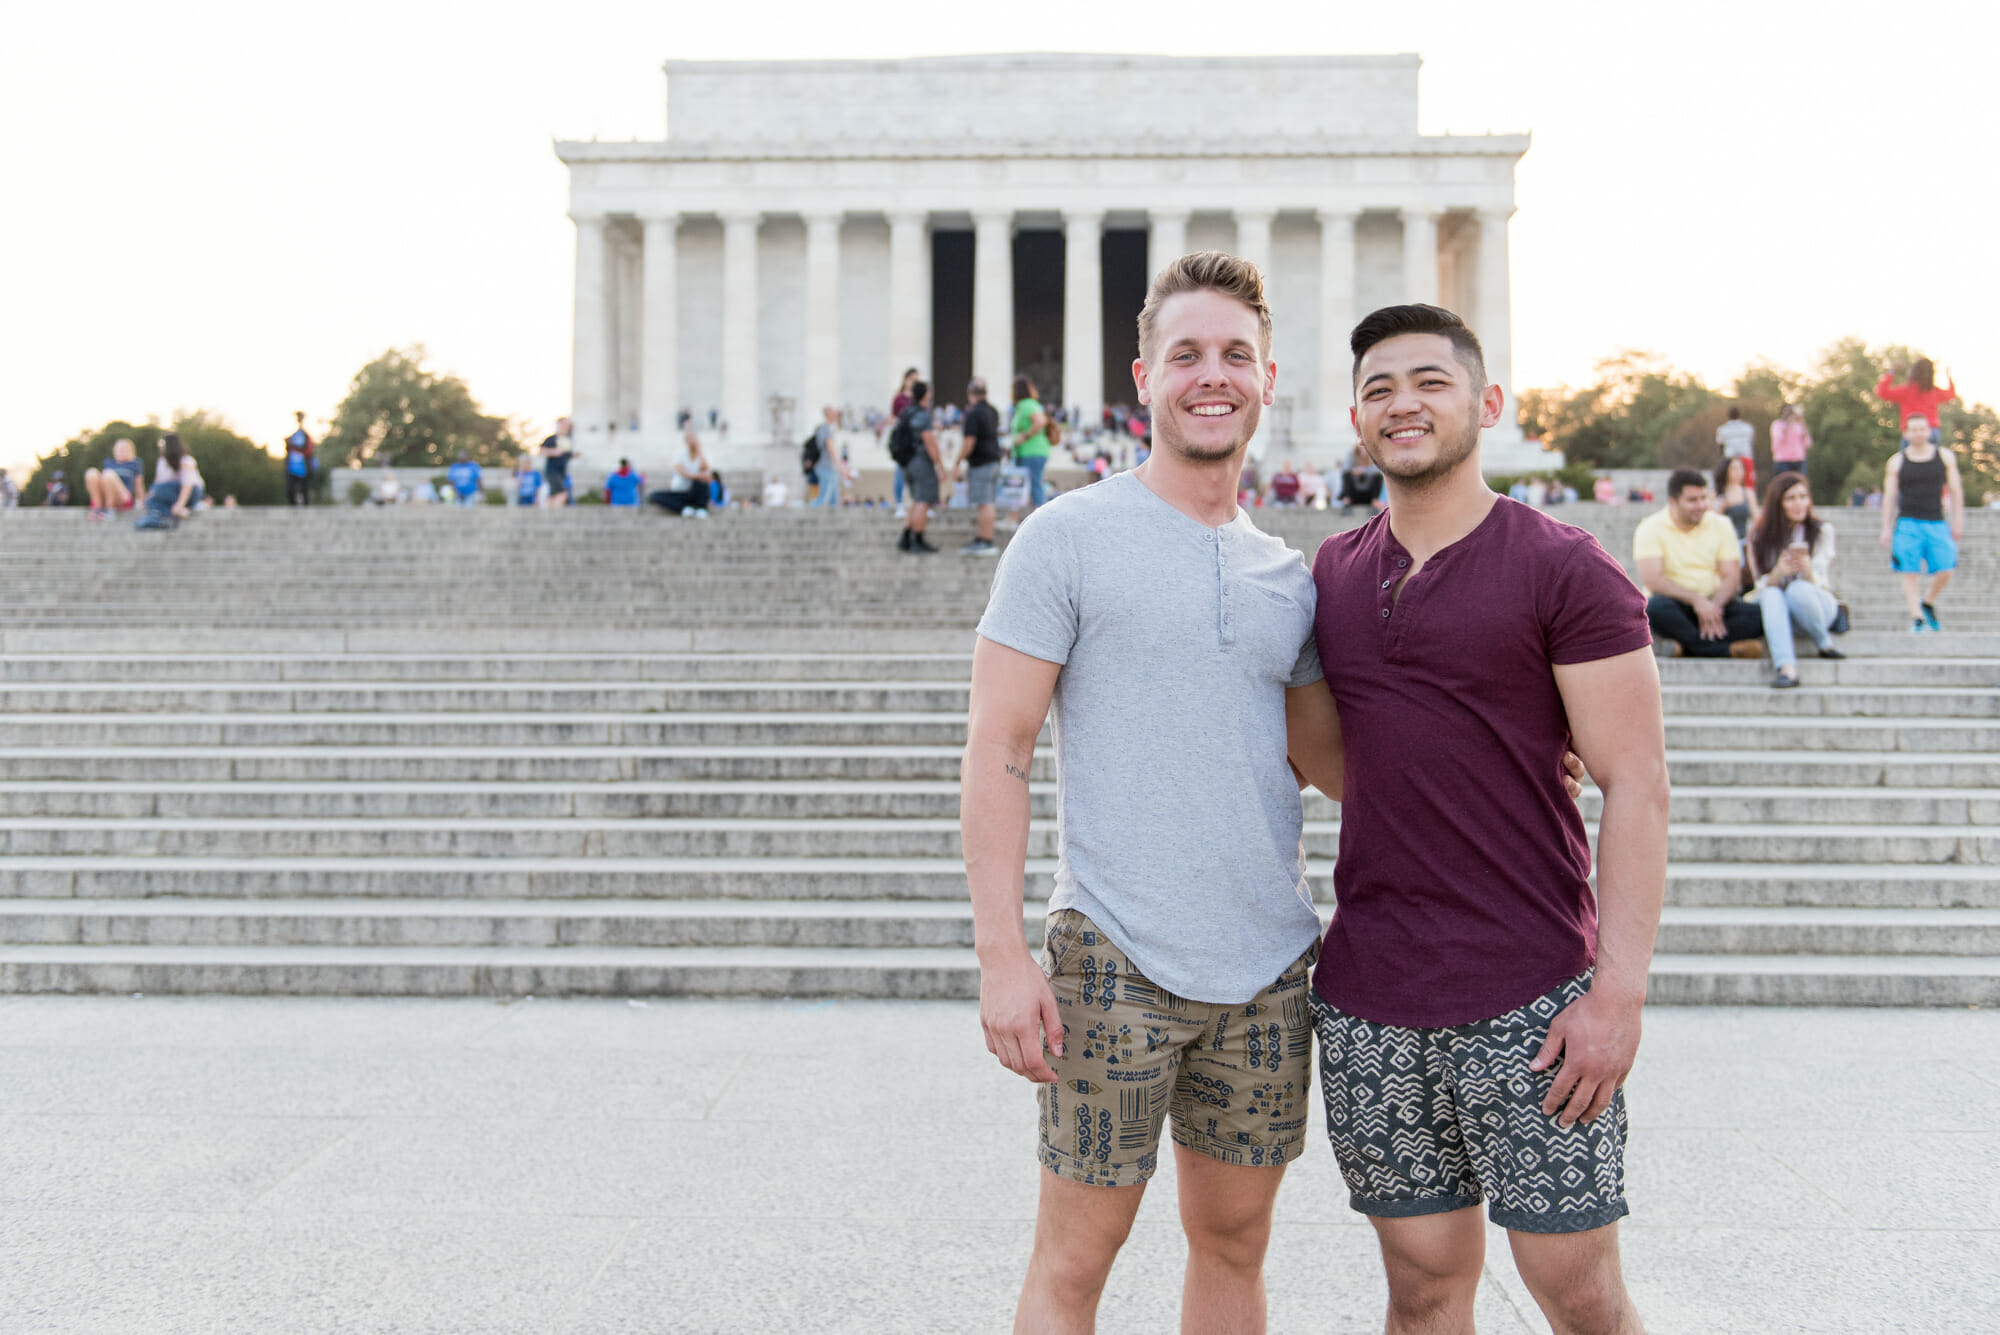 Gay LGBT couple posing in front of the Lincoln Memorial on the National Mall in Washington, DC